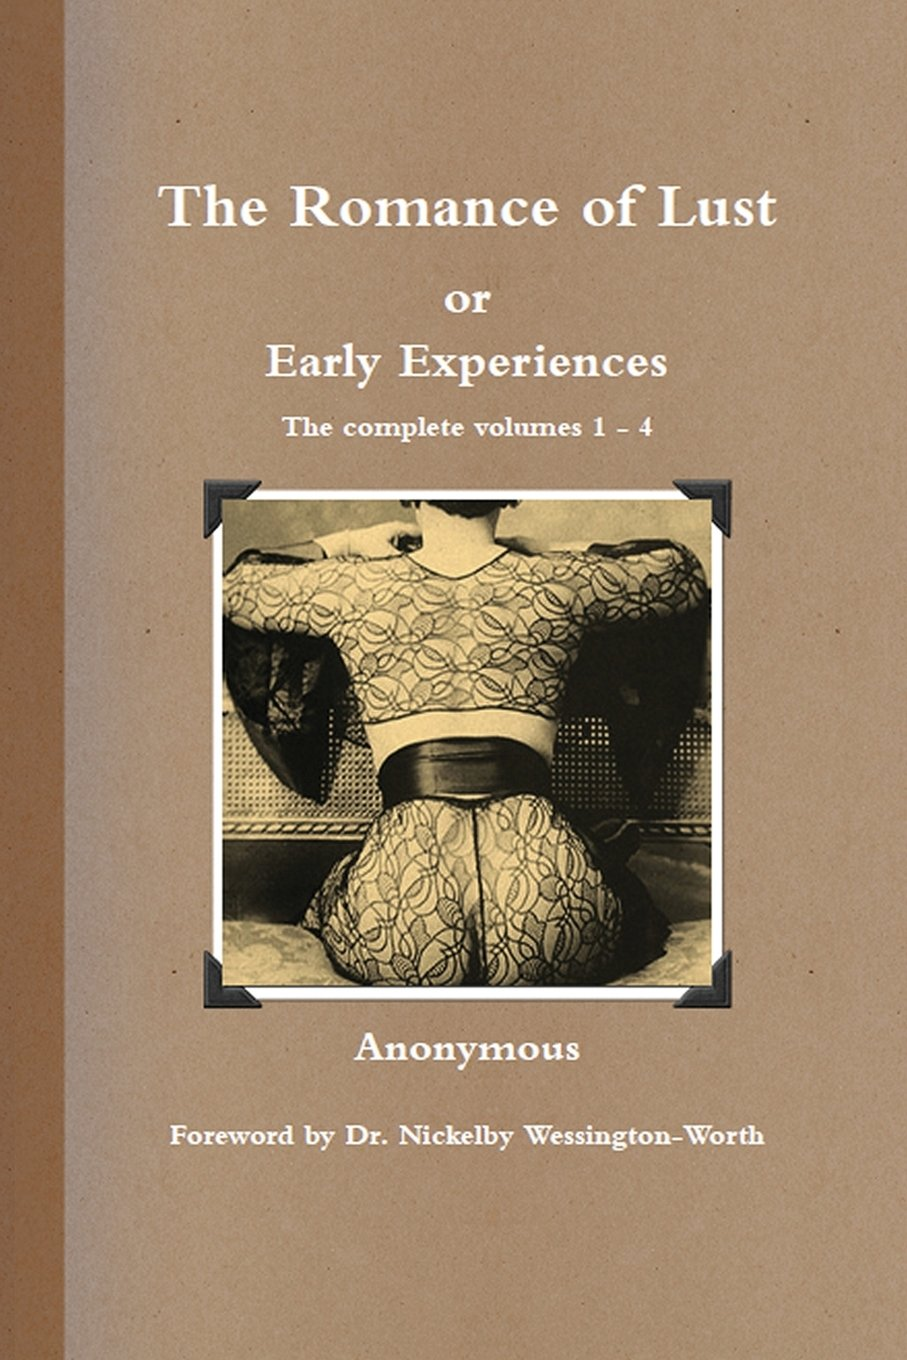 The Romance of Lust or Early Experiences ebook